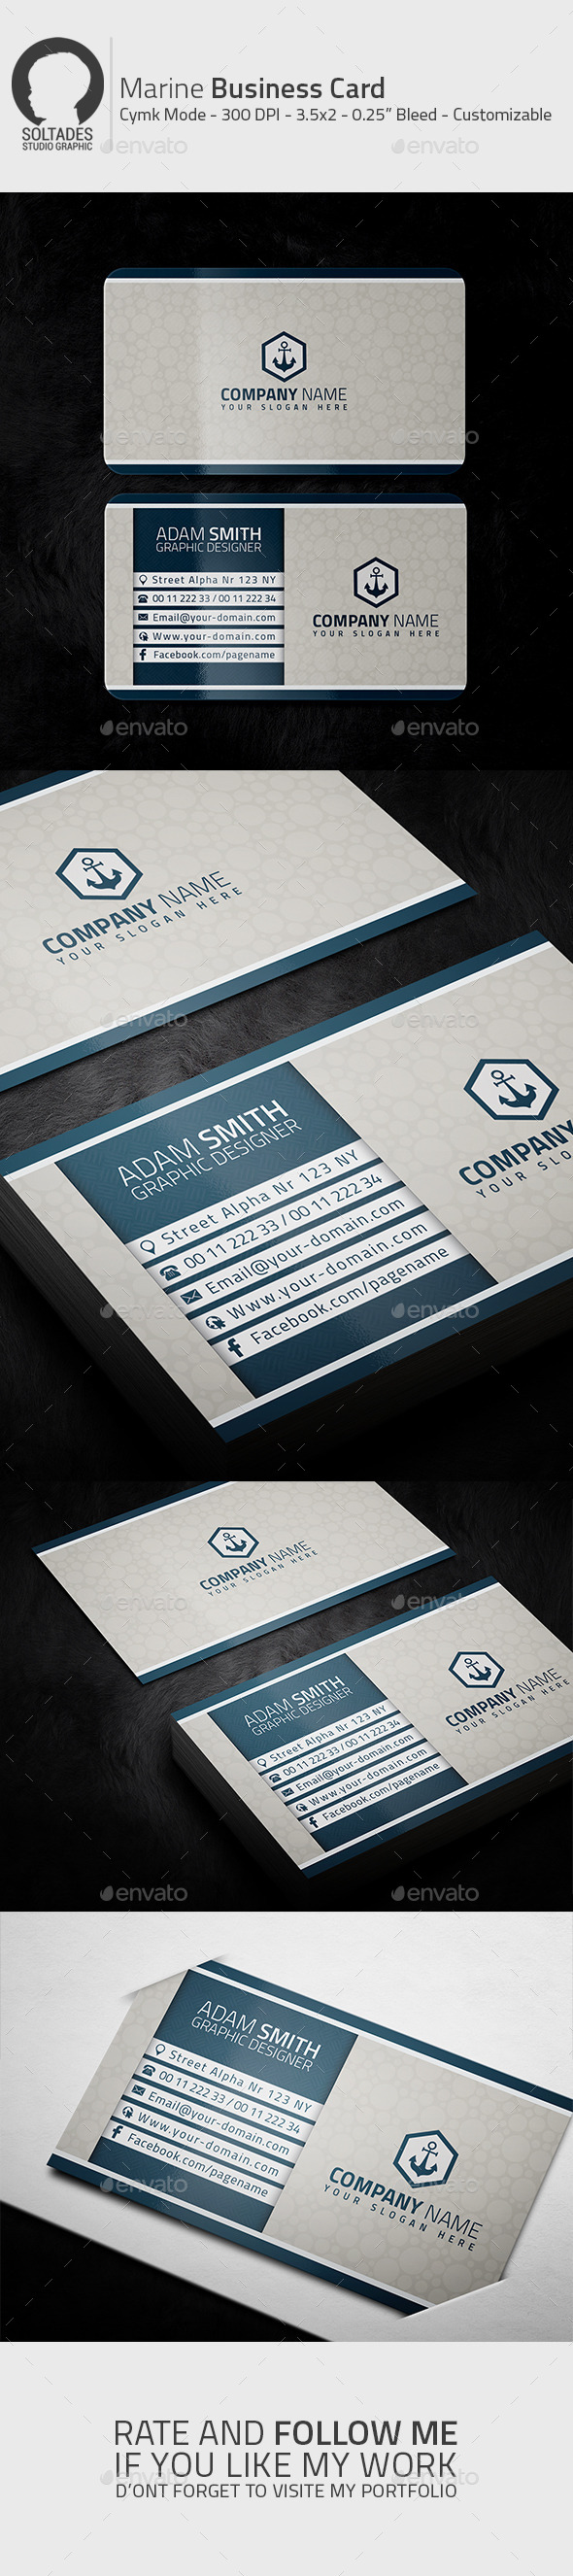 GraphicRiver Marine Business Card 11210261